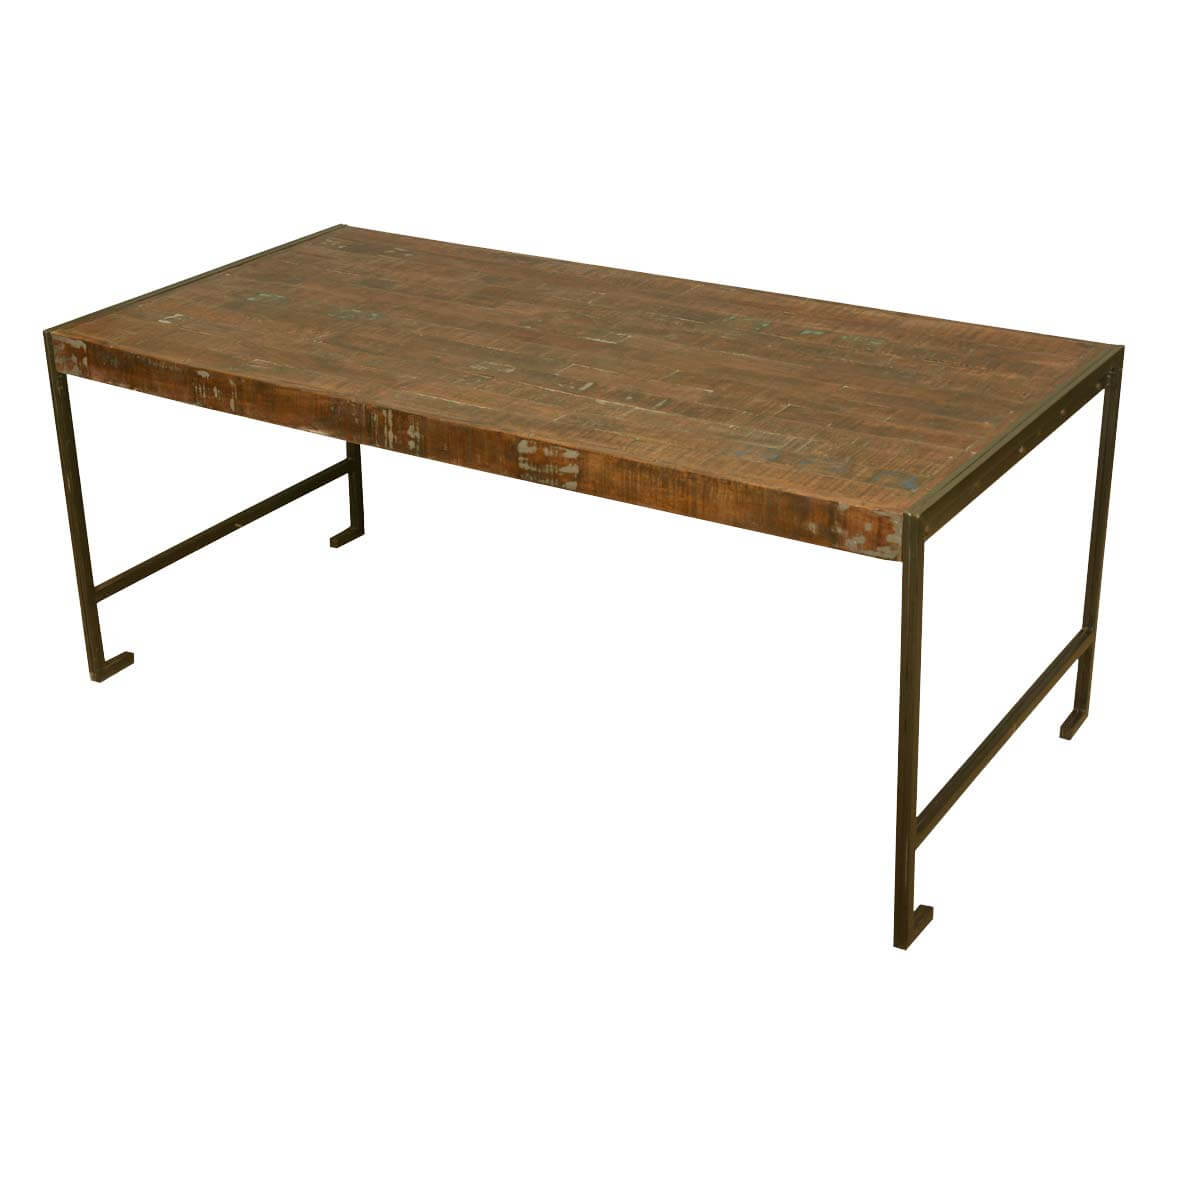 Philadelphia modern rustic reclaimed wood industrial for Wood modern dining table